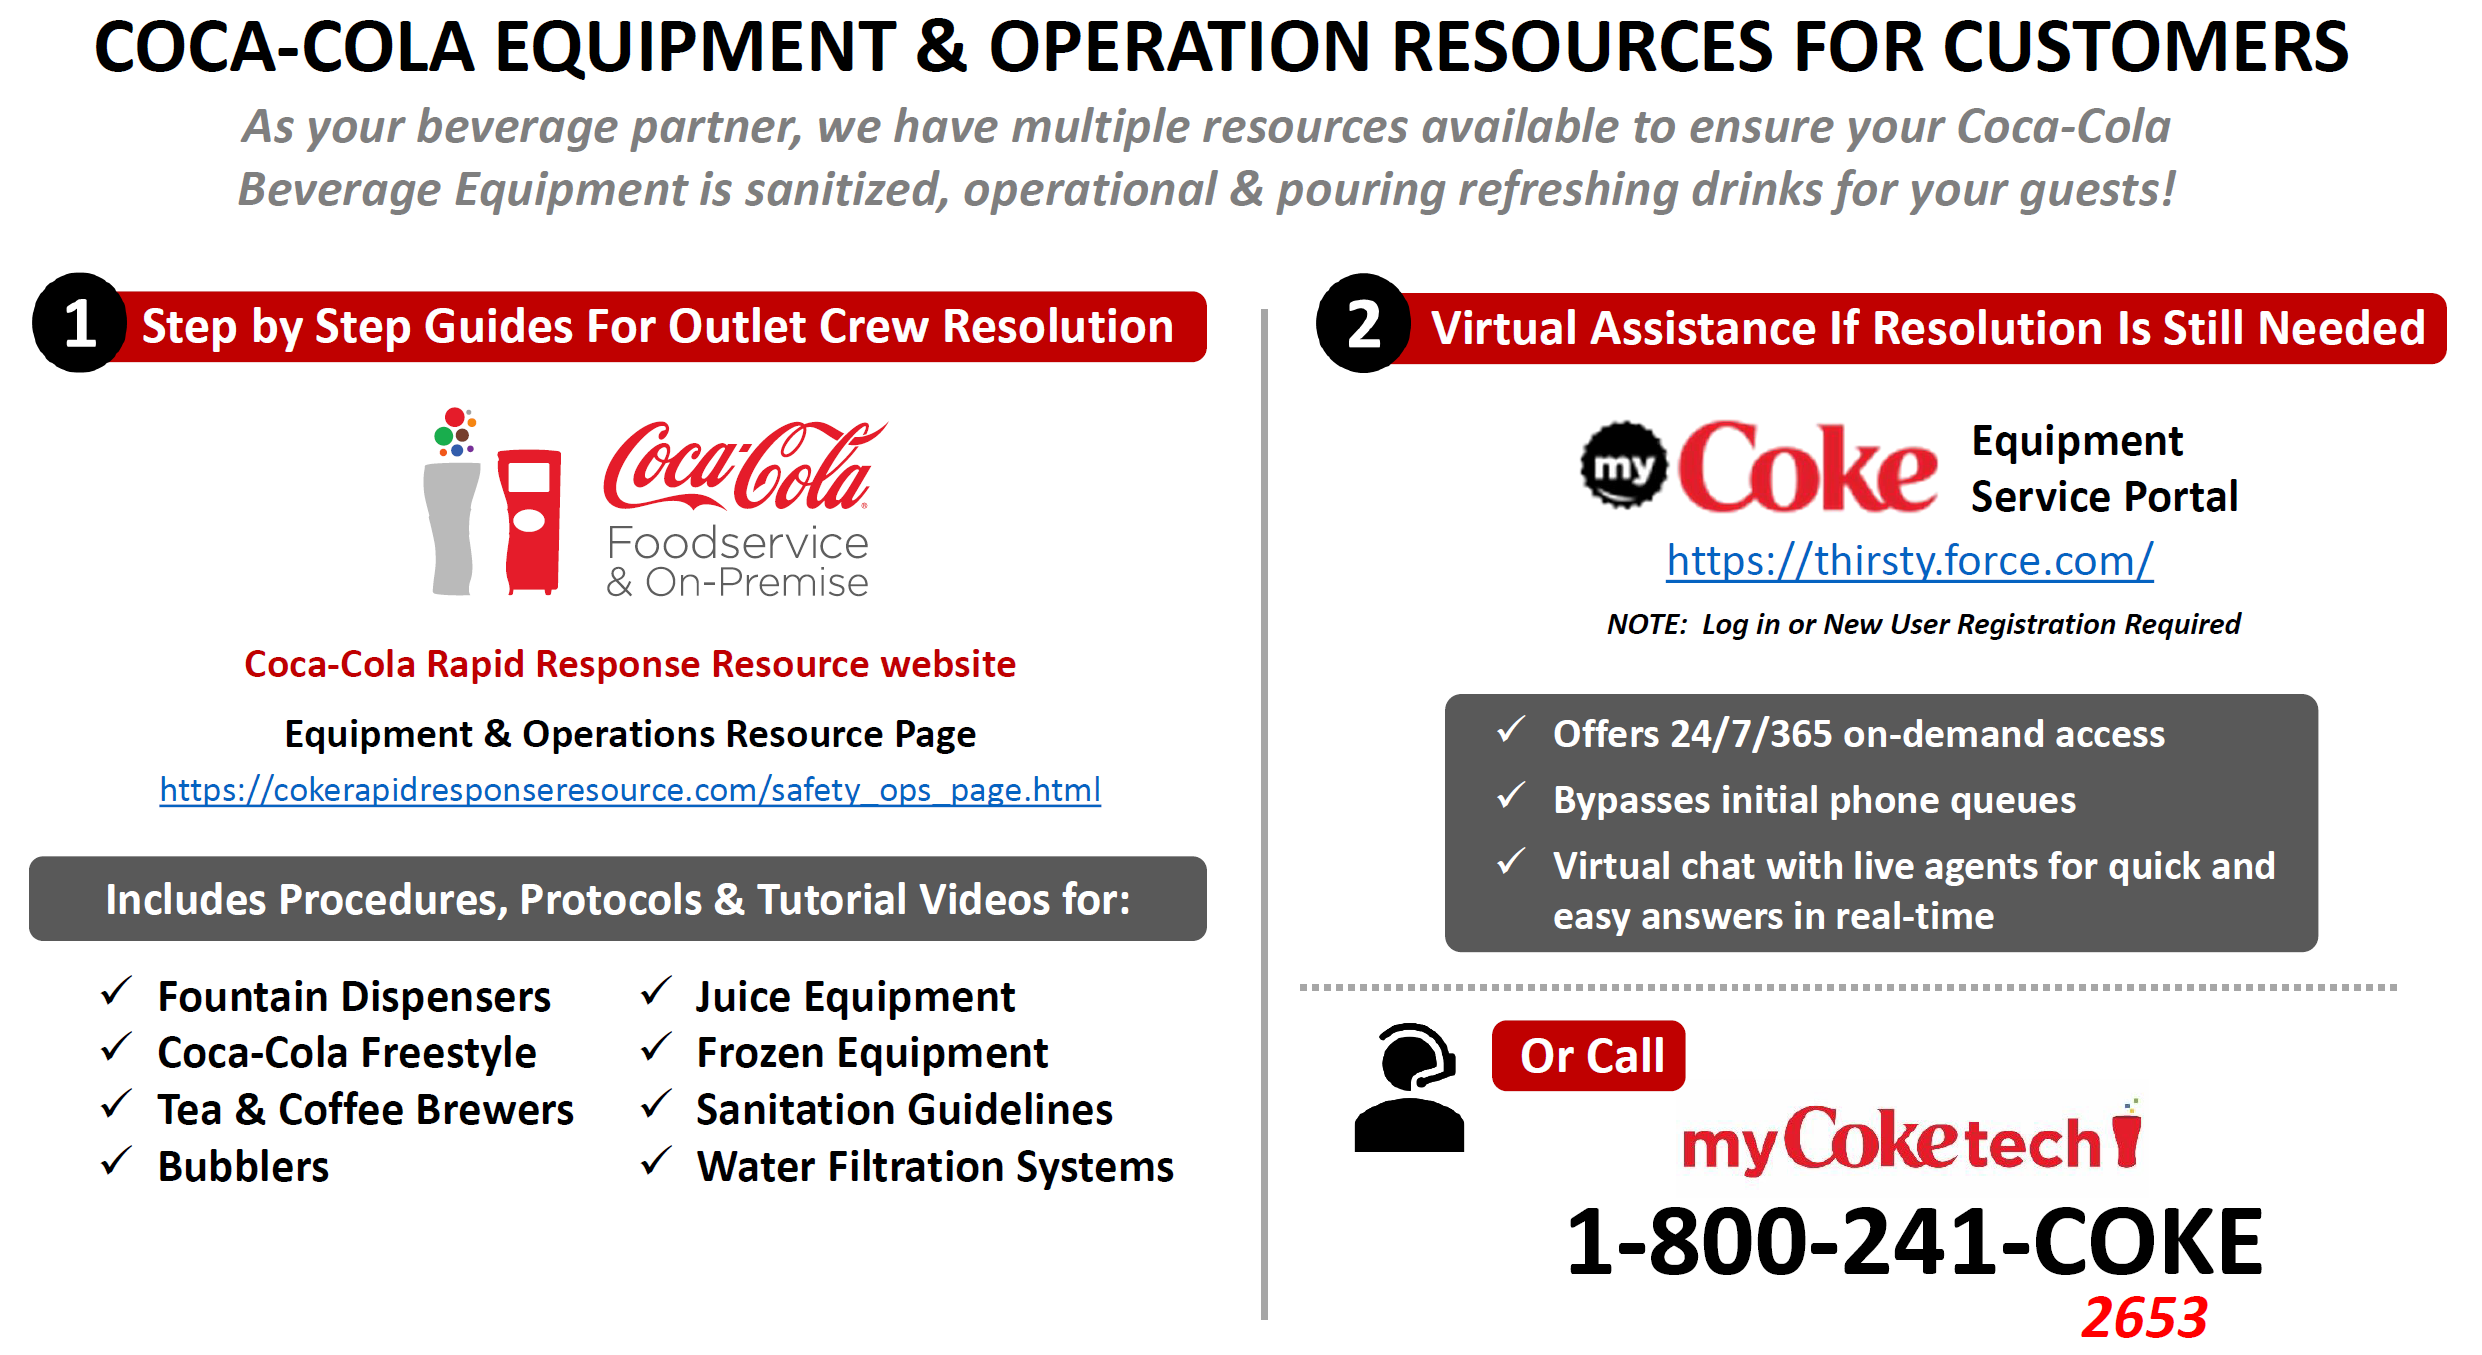 coke equipment operation